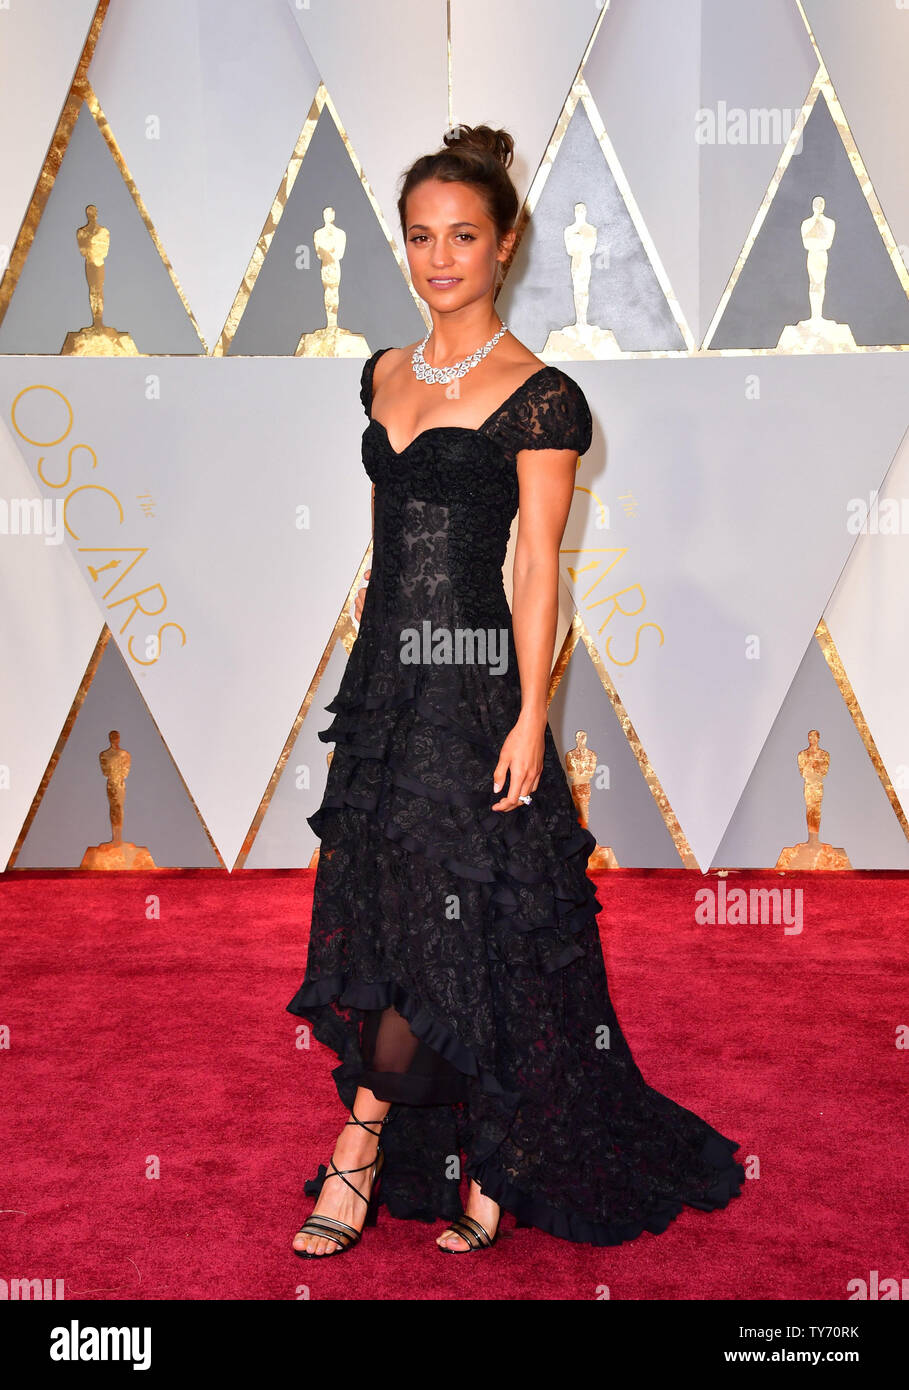 Alicia Vikander arrives on the red carpet for the 89th